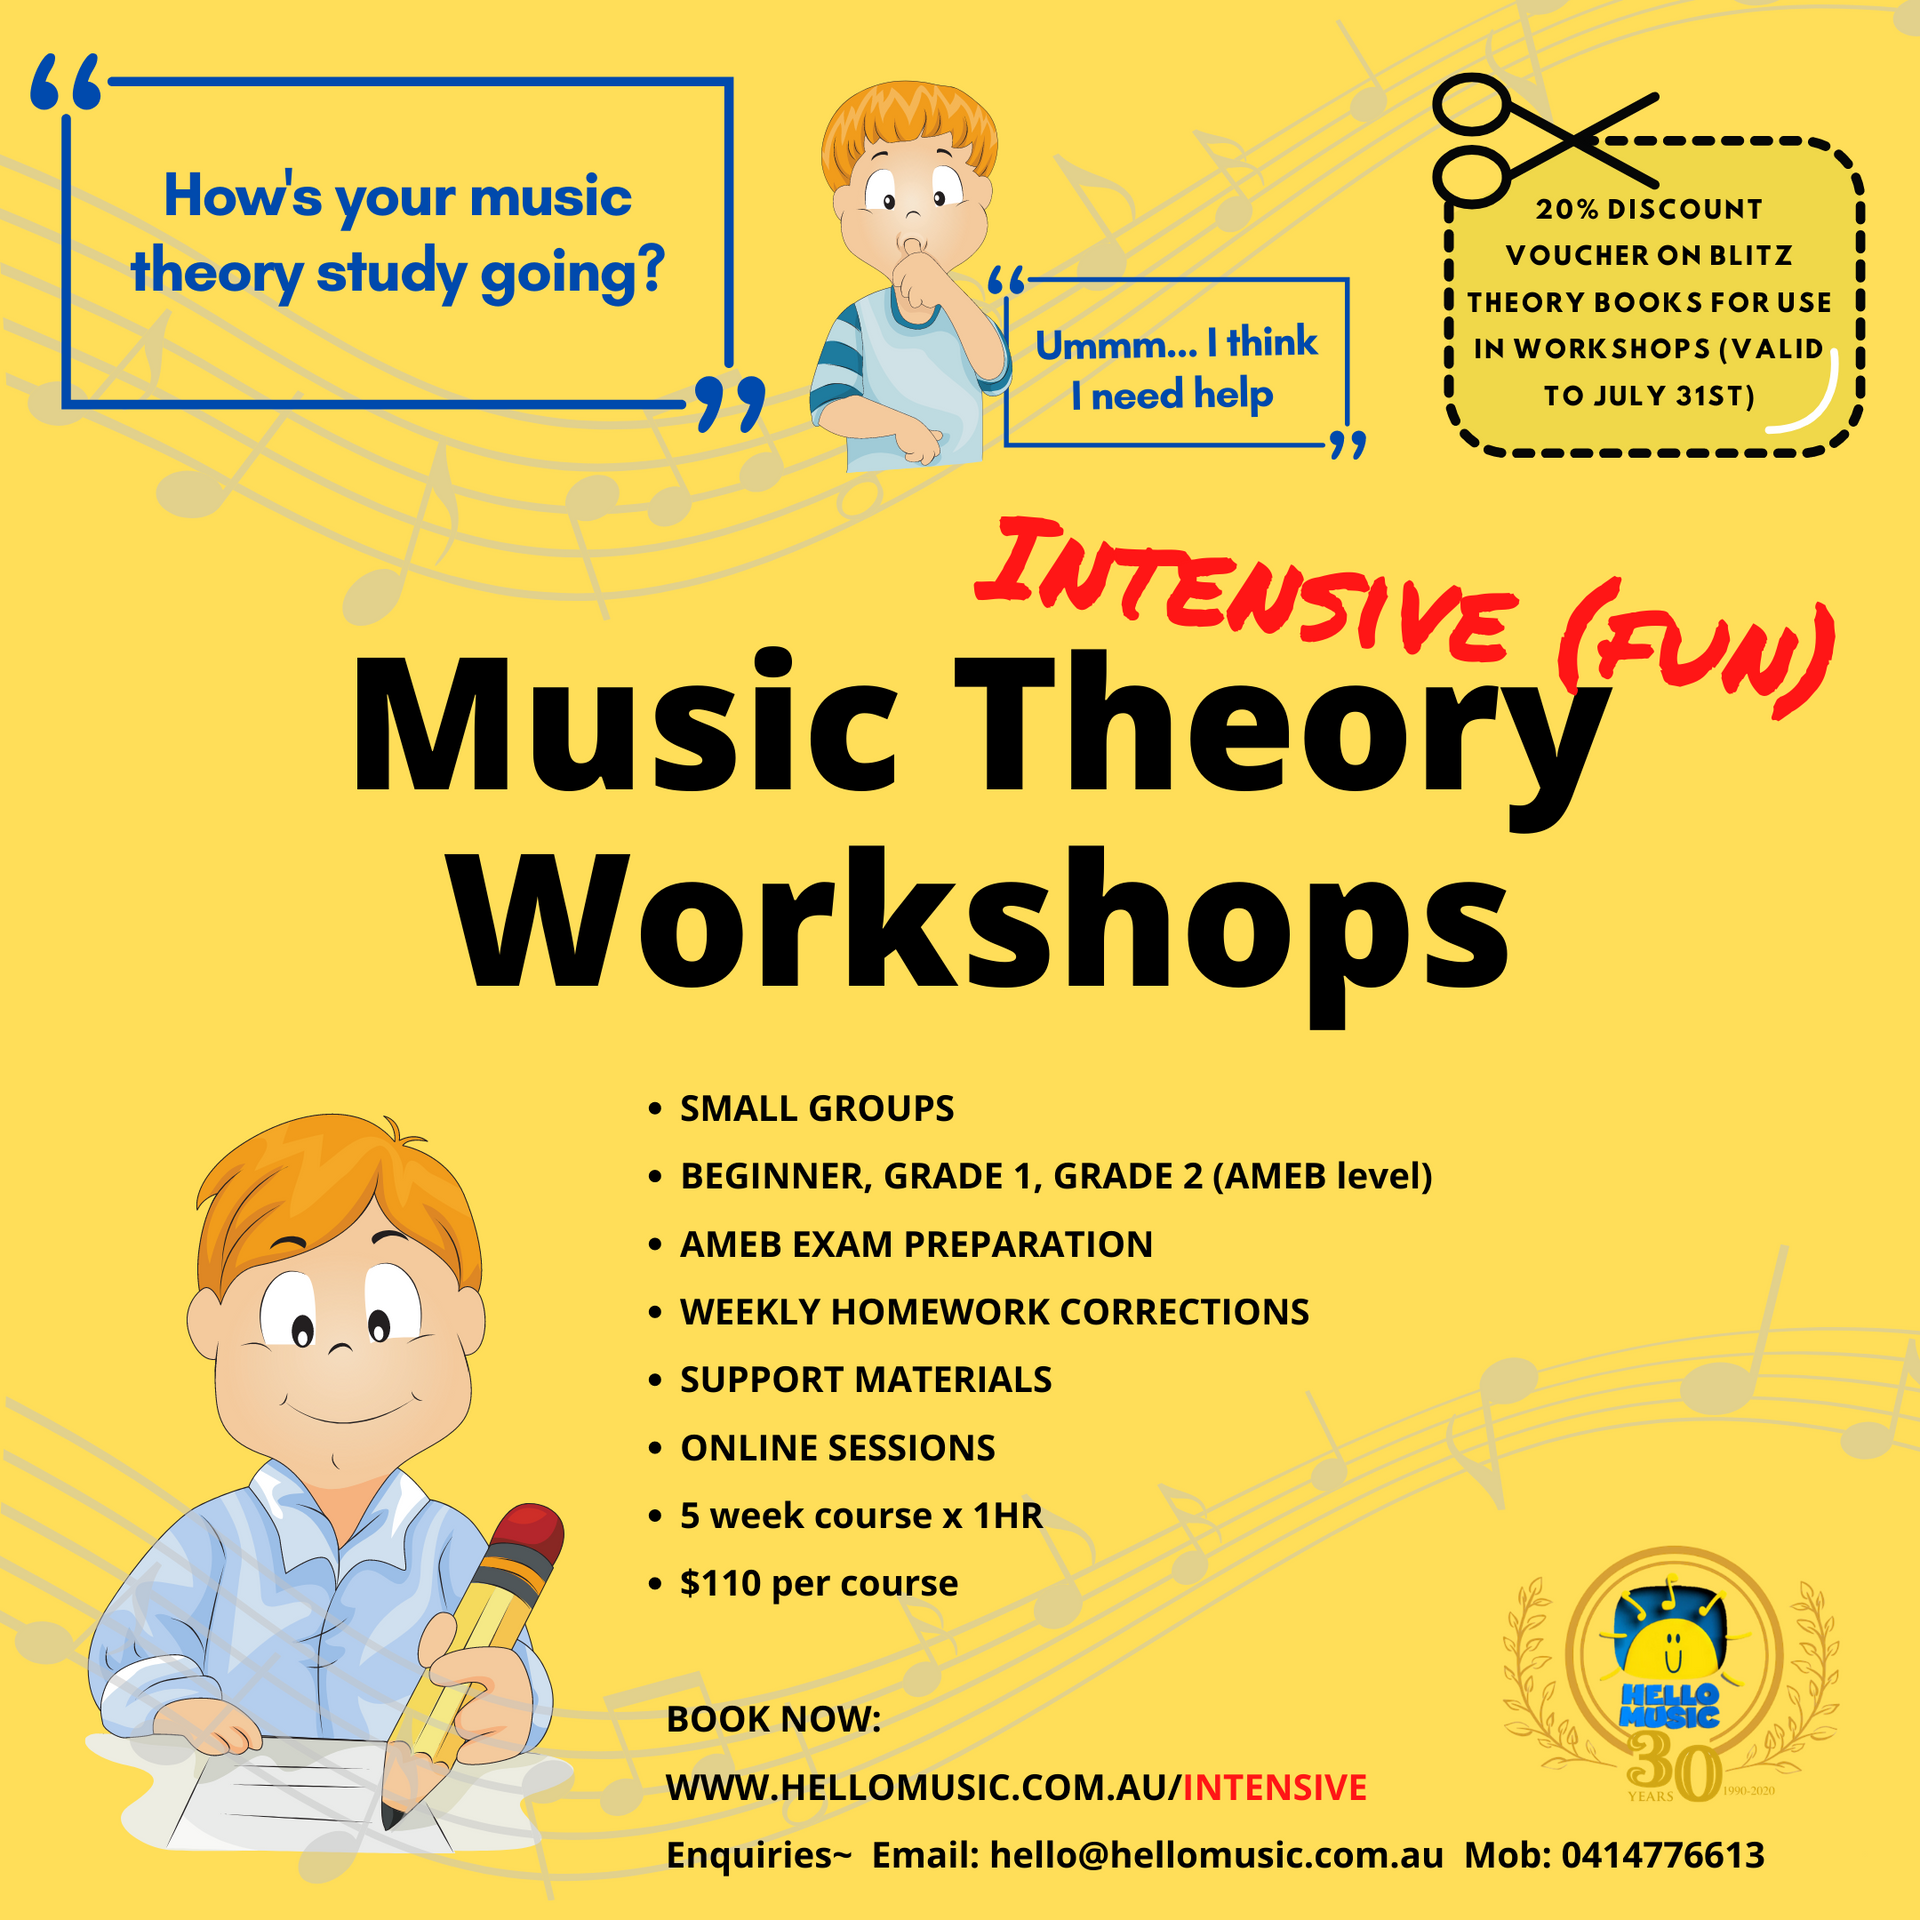 Music Theory Workshops